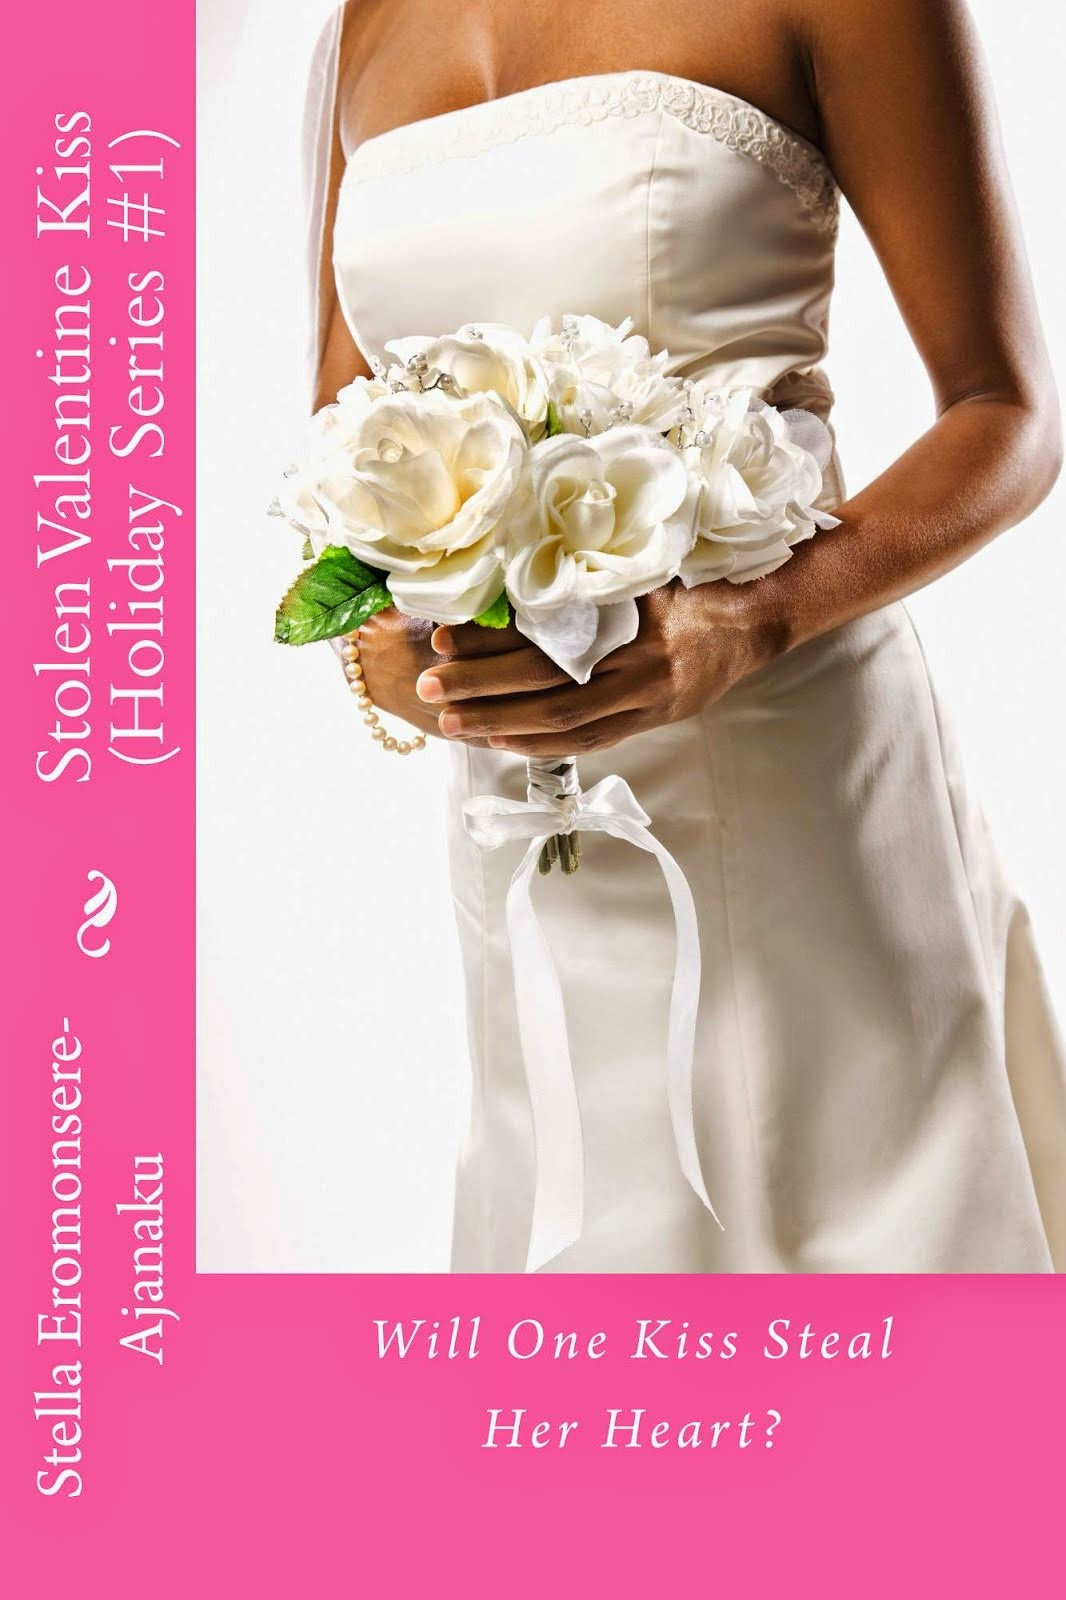 Sweet Flirty & Feisty Romance Novel